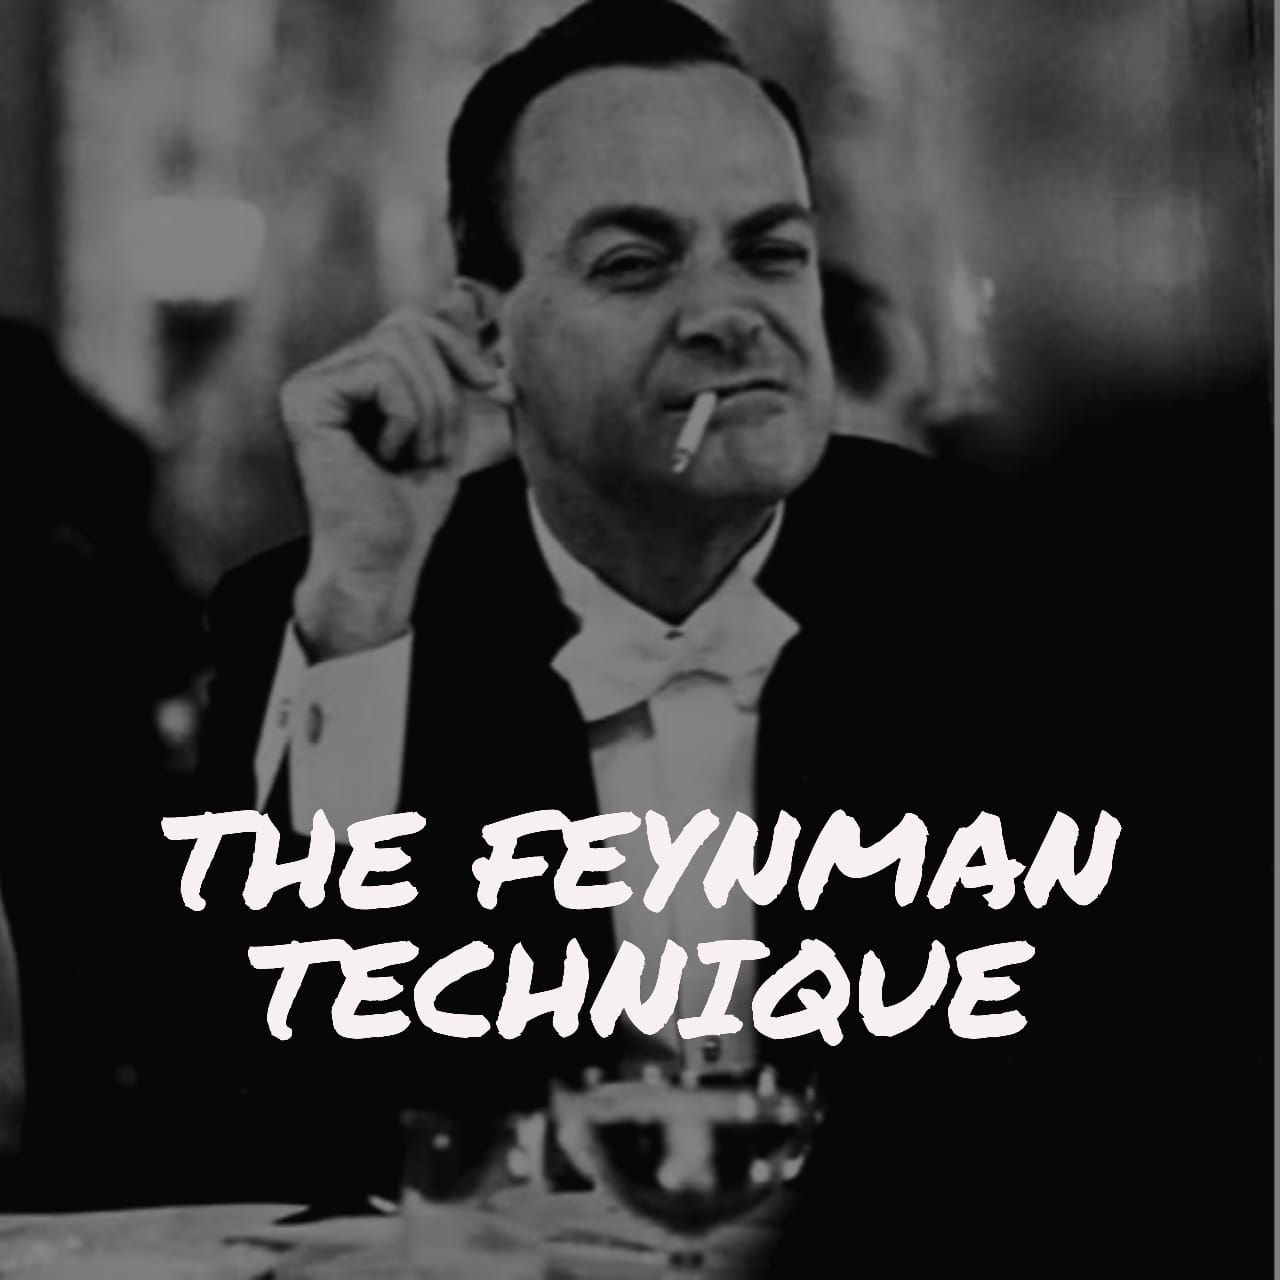 How To Prepare For Tests and Exams: The Feynman Technique